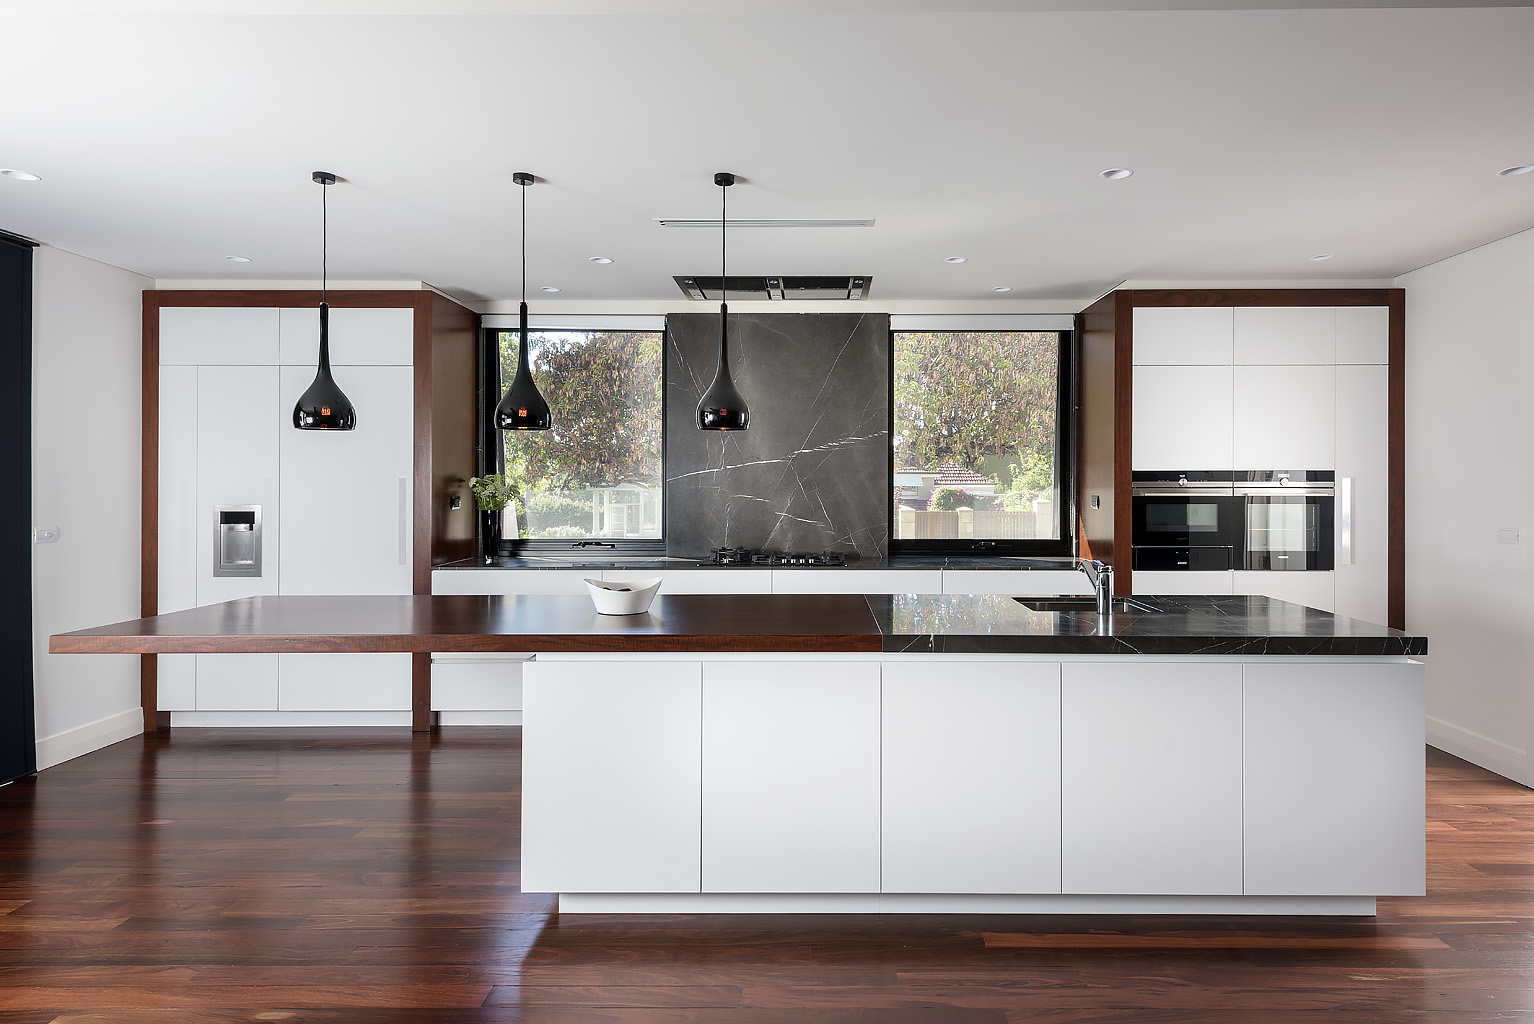 Kbdi 2016 Design Awards National Winners The Kitchen And Bathroom Blog